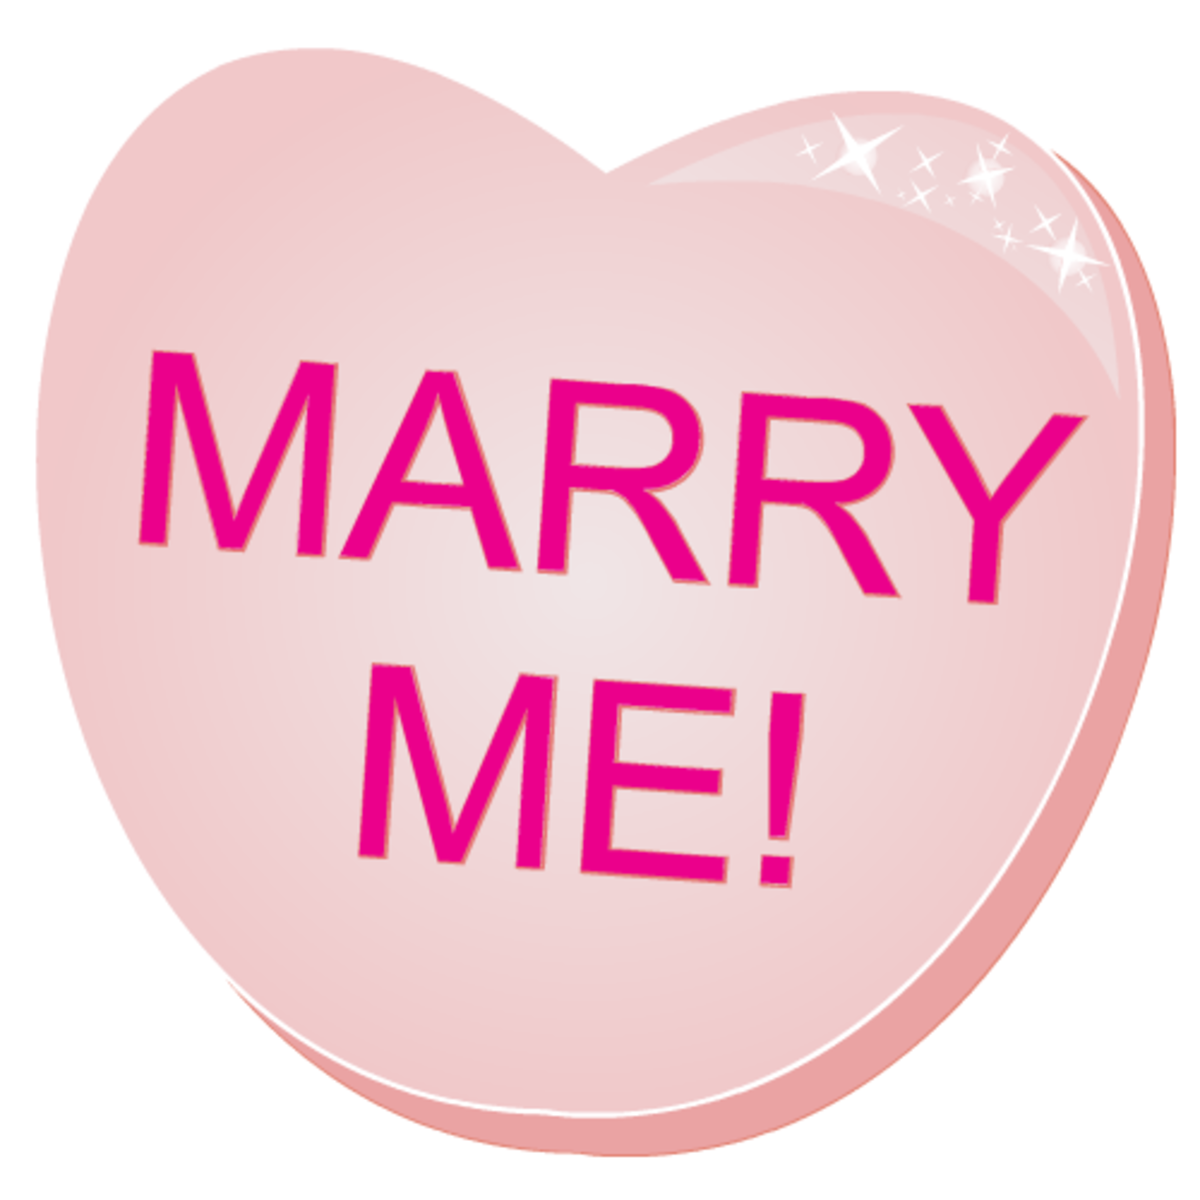 Free valentines clip art: Marry Me! pink candy heart